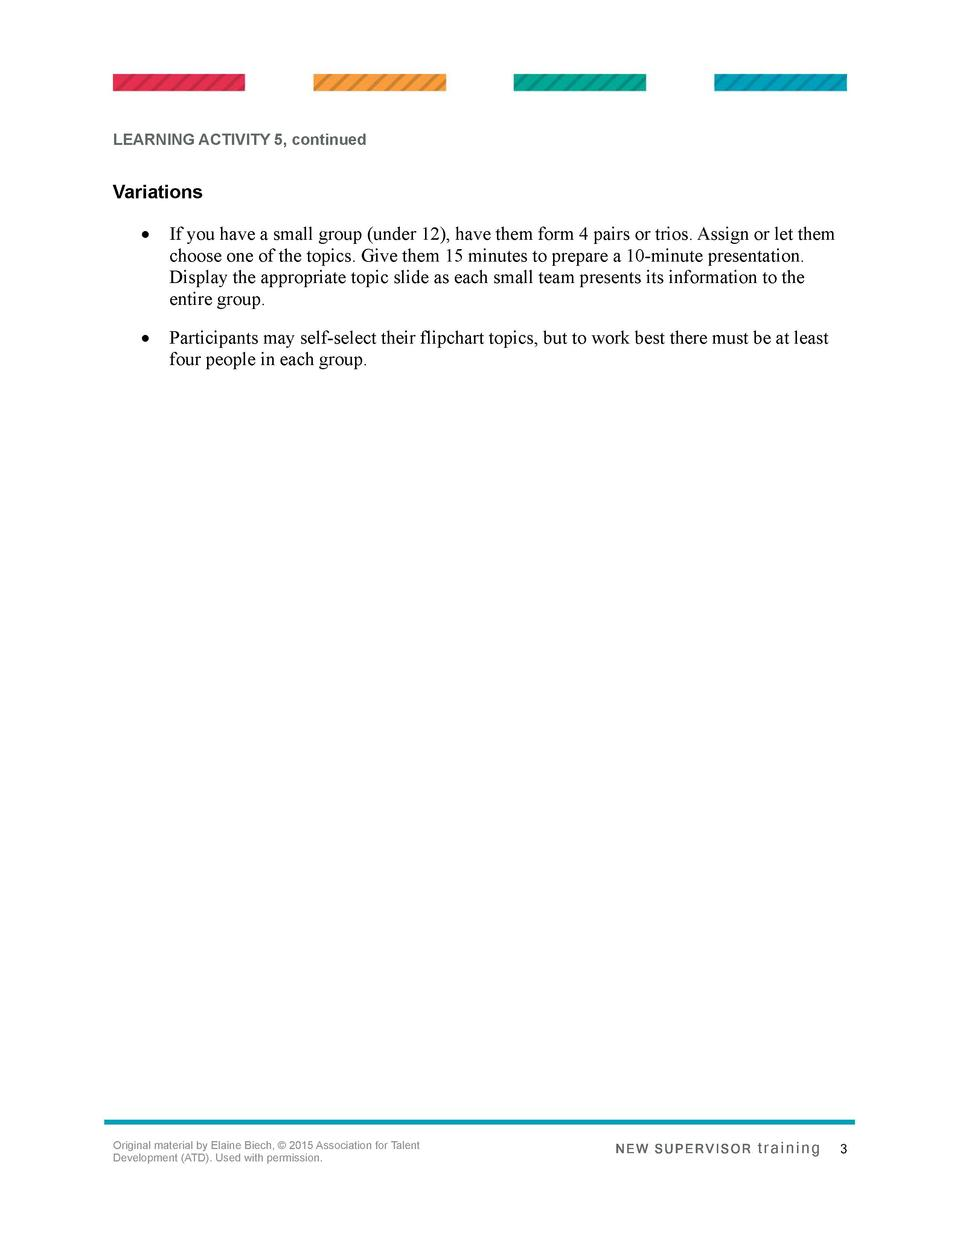 LEARNING ACTIVITY 5, continued  Variations      If you have a small group  under 12 , have them form 4 pairs or trios. Ass...